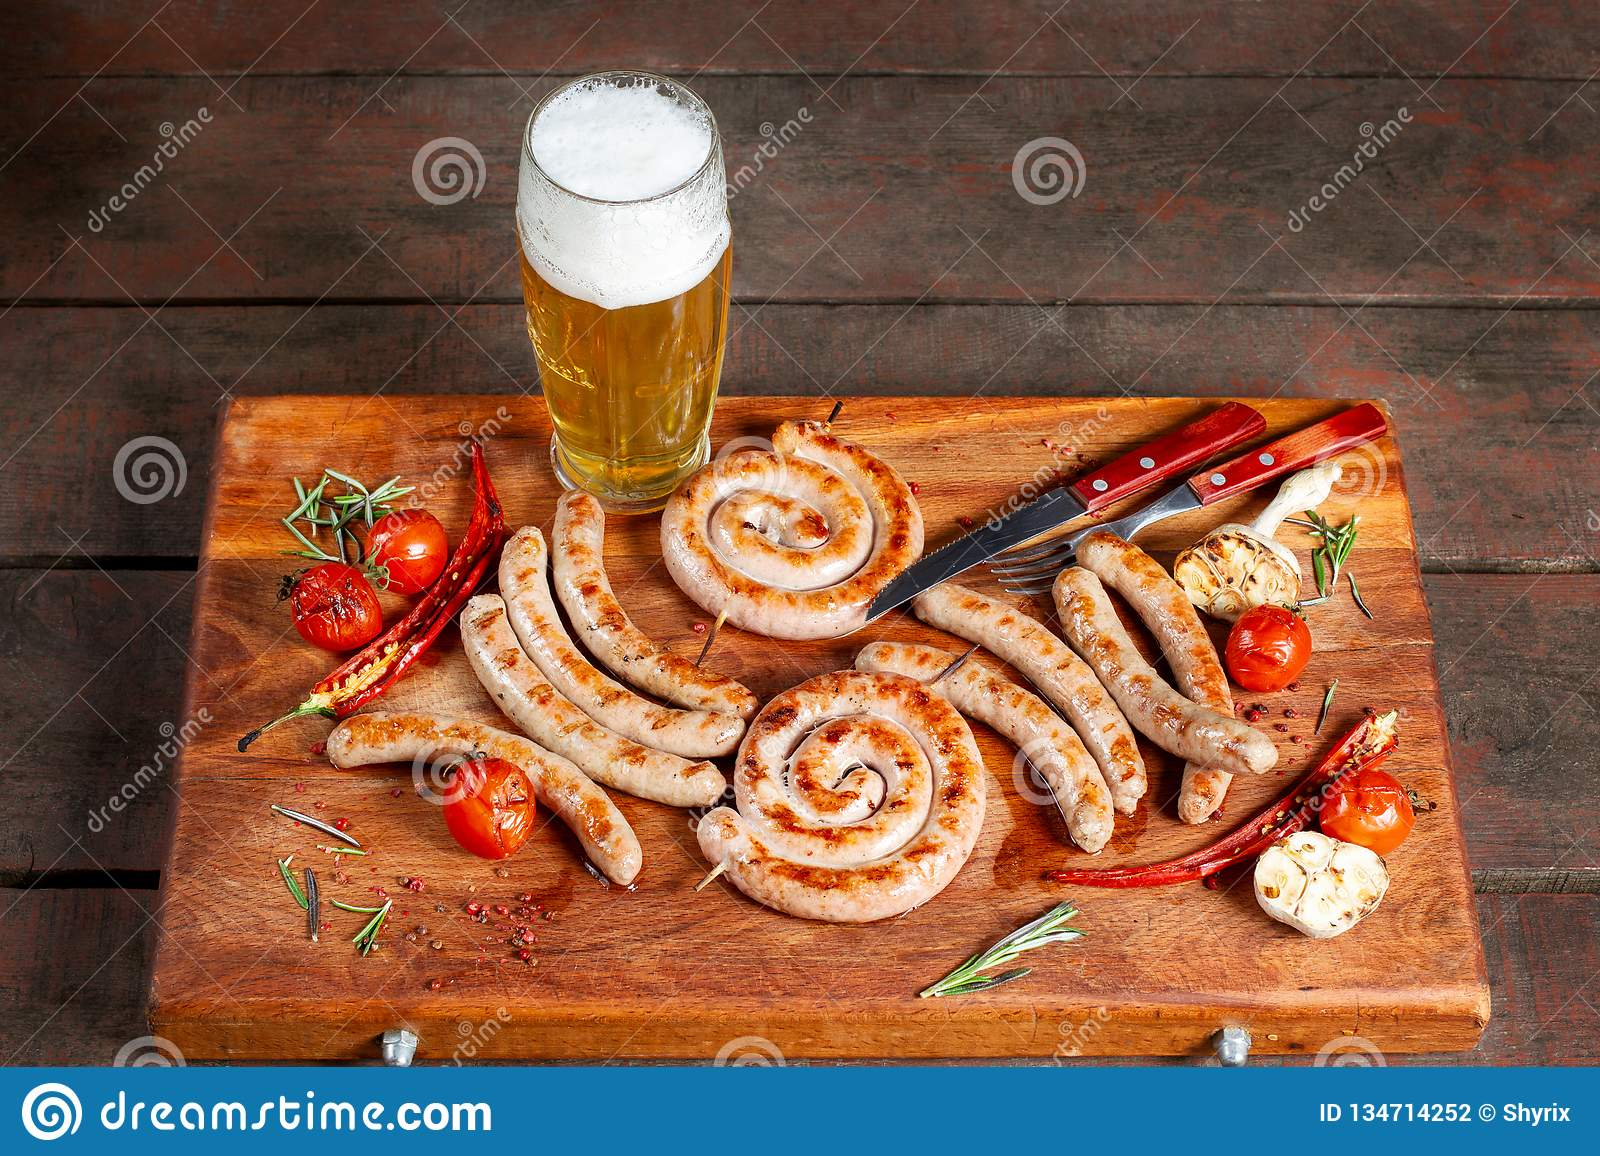 Grilled sausage ring on wooden board. Beautiful composition laid out on the board of natural wood.